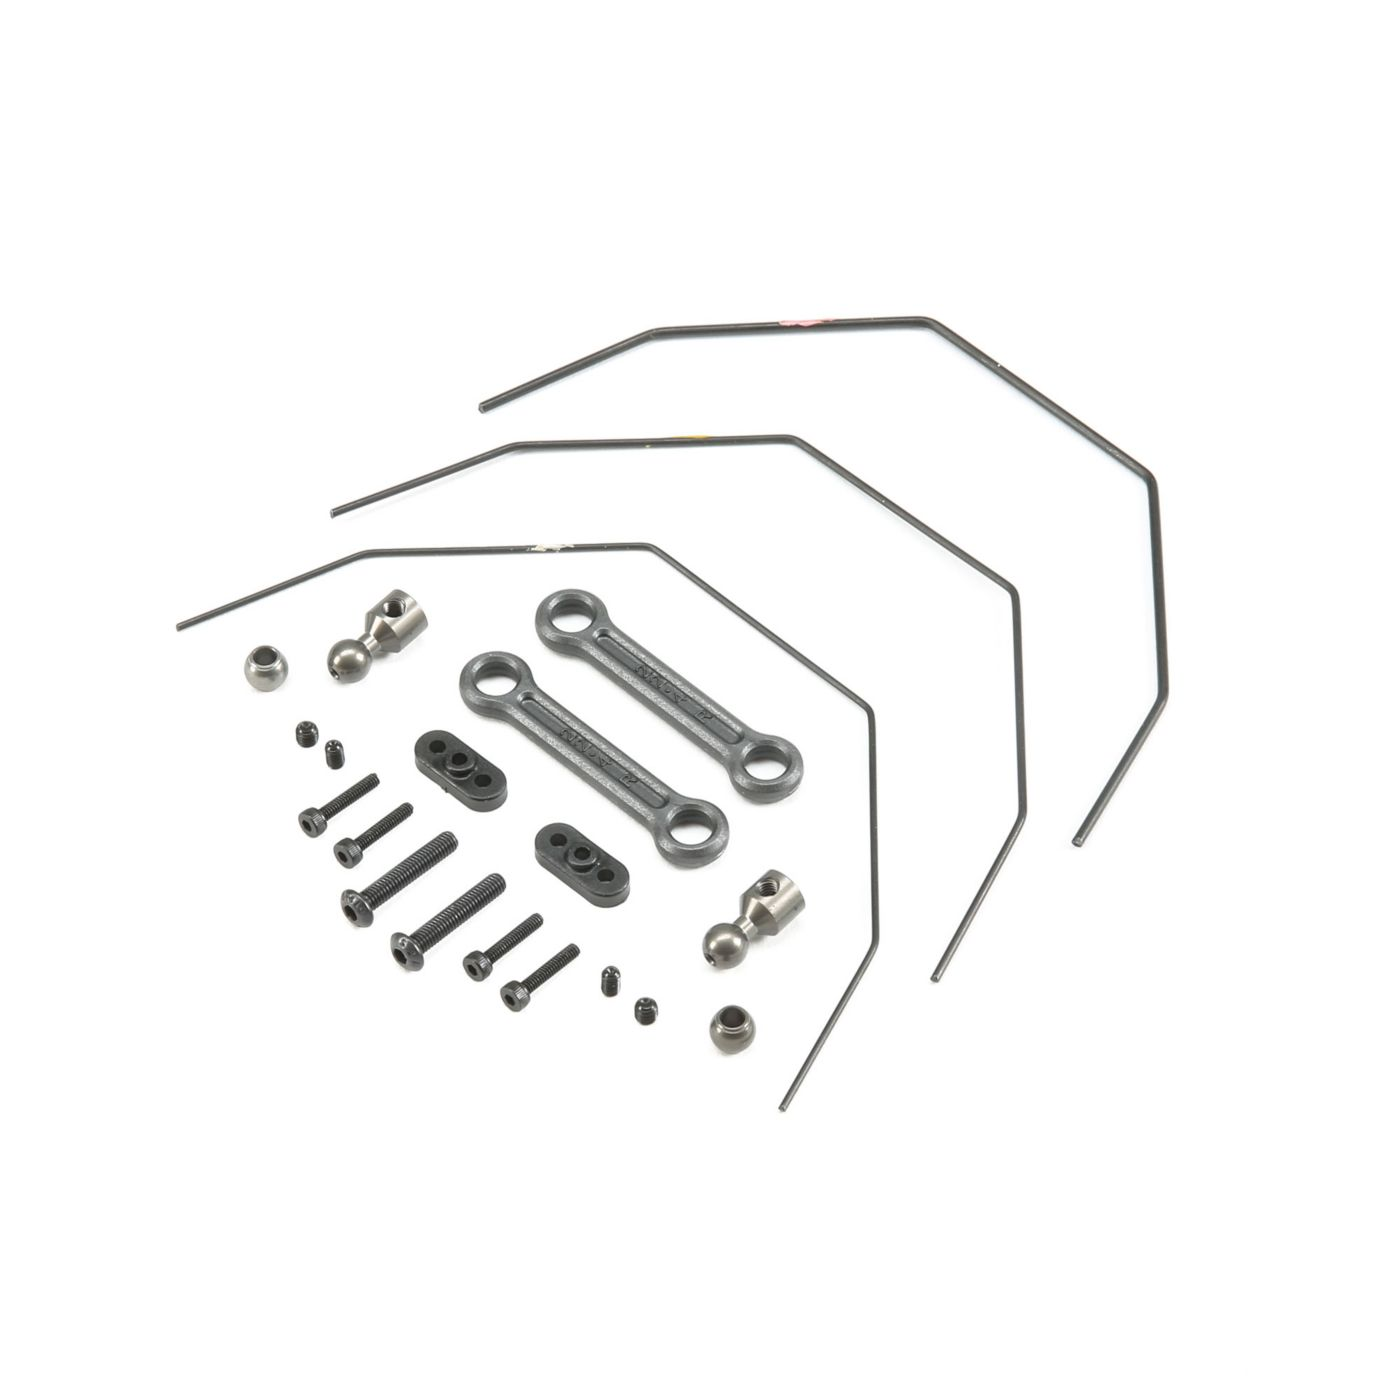 hight resolution of image for rear sway bar set 22sct 3 0 from horizonhobby